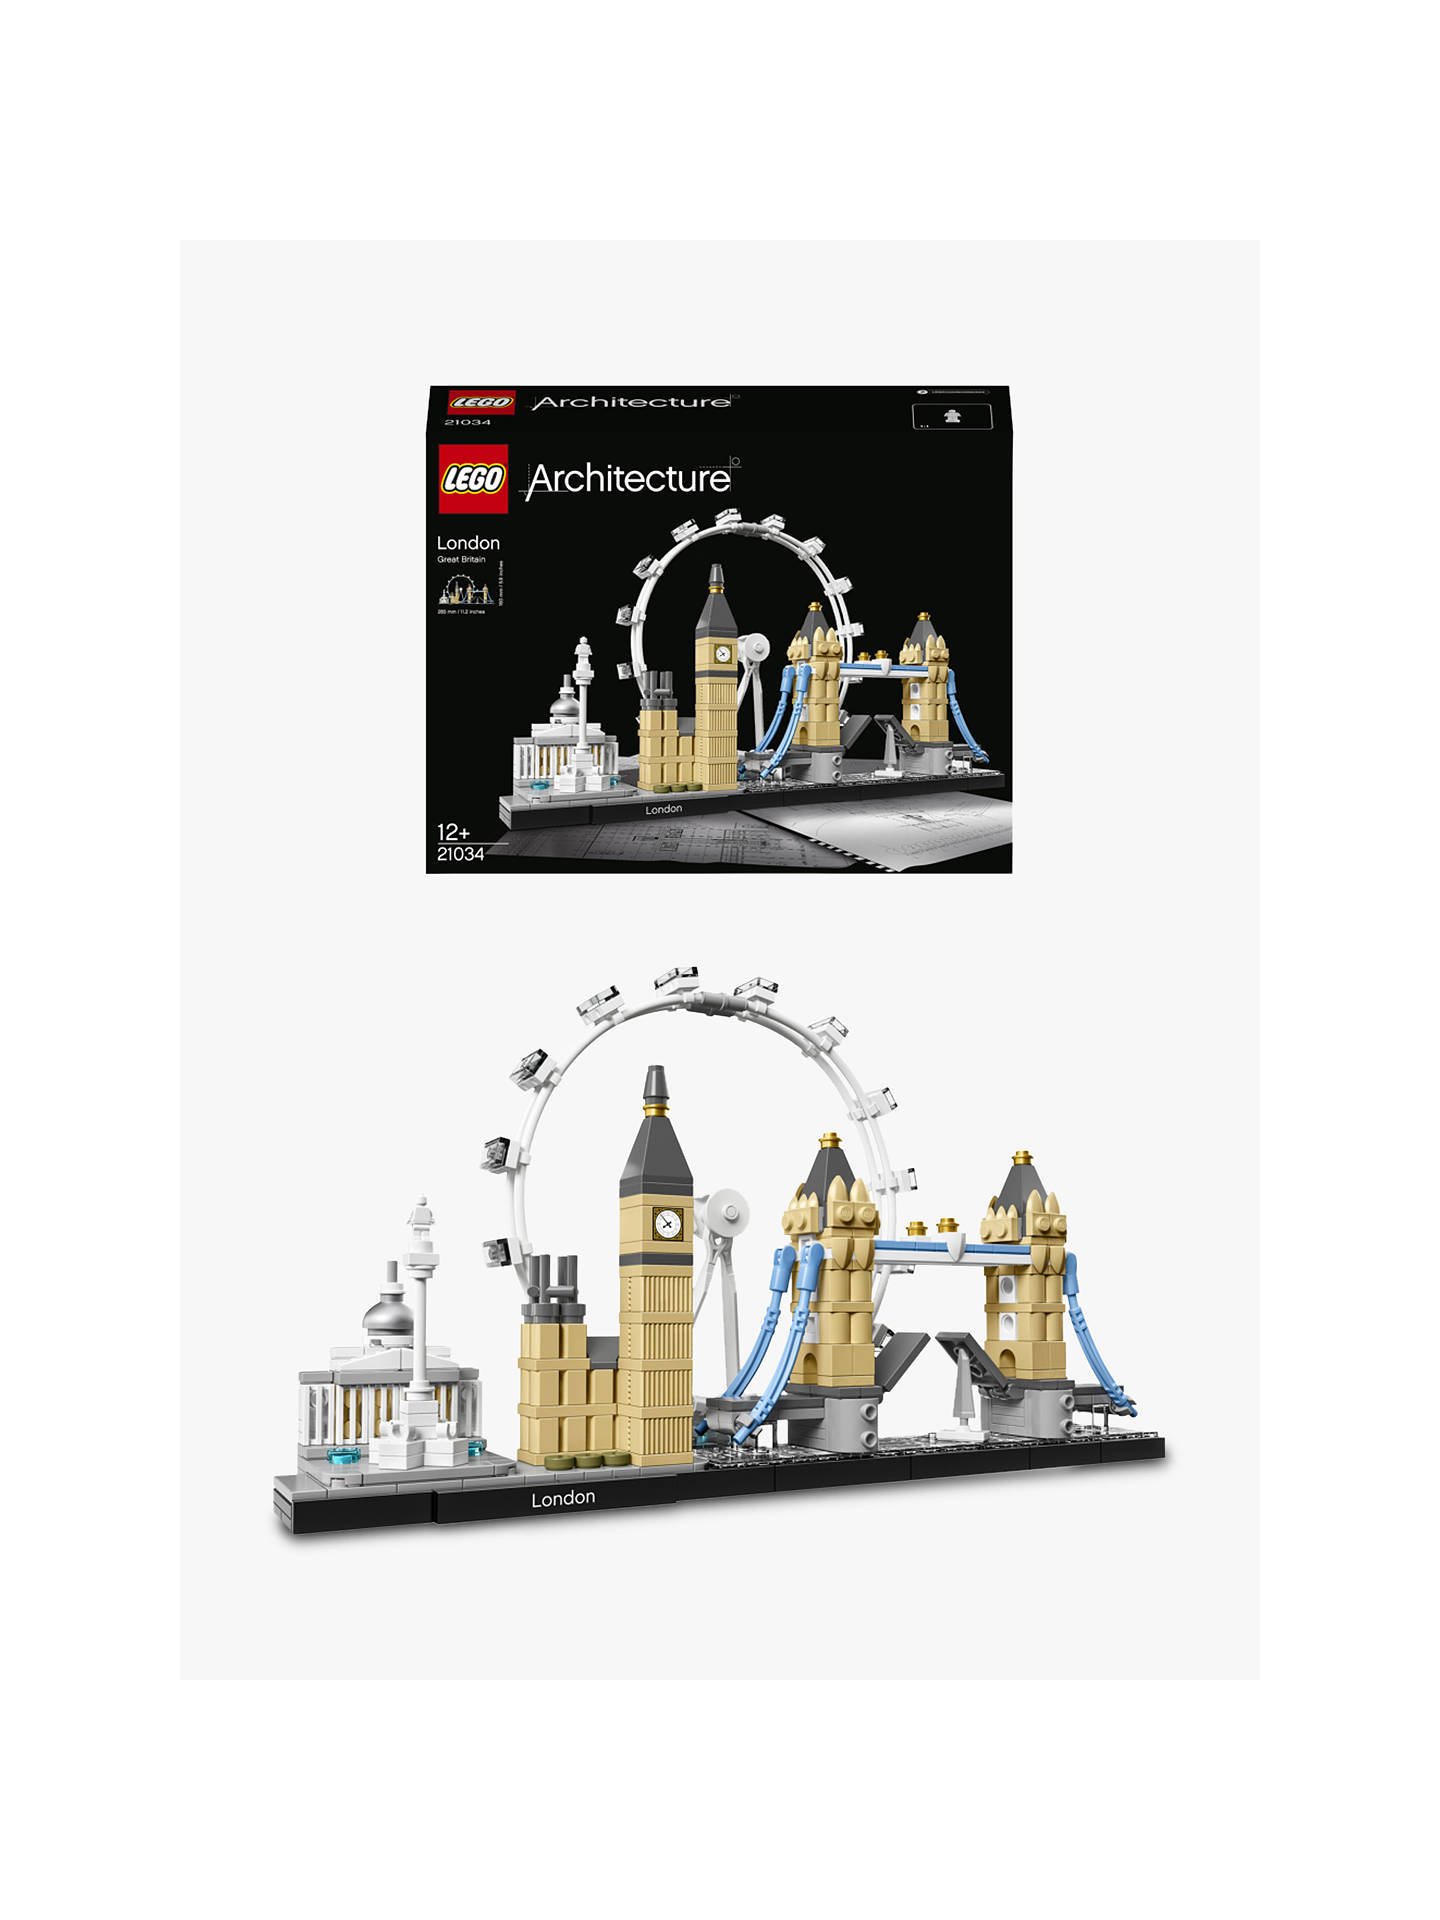 BuyLEGO Architecture 21034 London Online at johnlewis.com